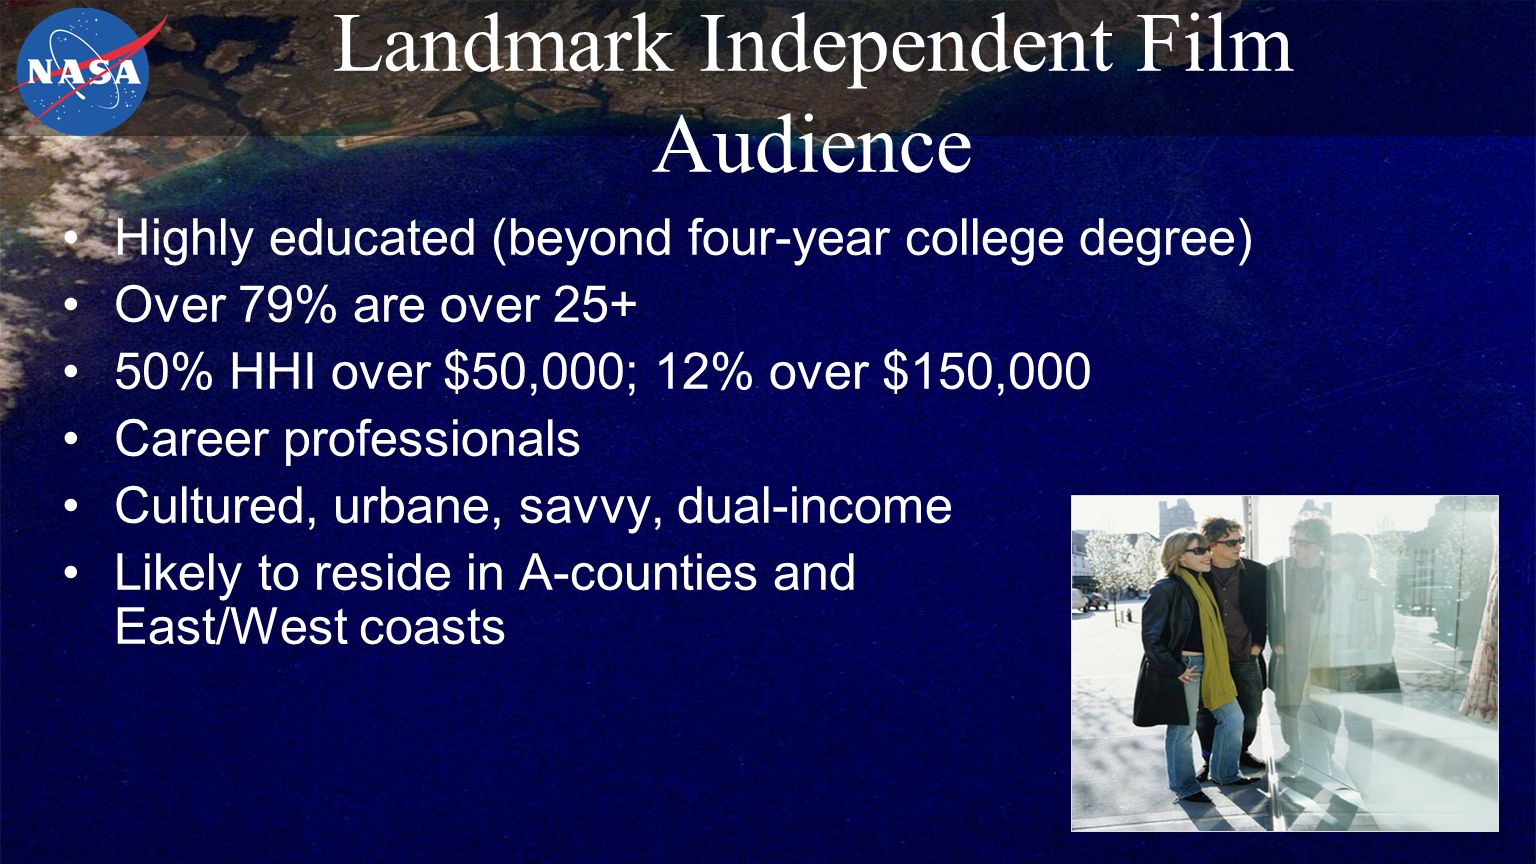 Landmark Independent Film Audience Highly educated (beyond four-year college degree) Over 79% are over % HHI over $50,000; 12% over $150,000 Career professionals Cultured, urbane, savvy, dual-income Likely to reside in A-counties and East/West coasts